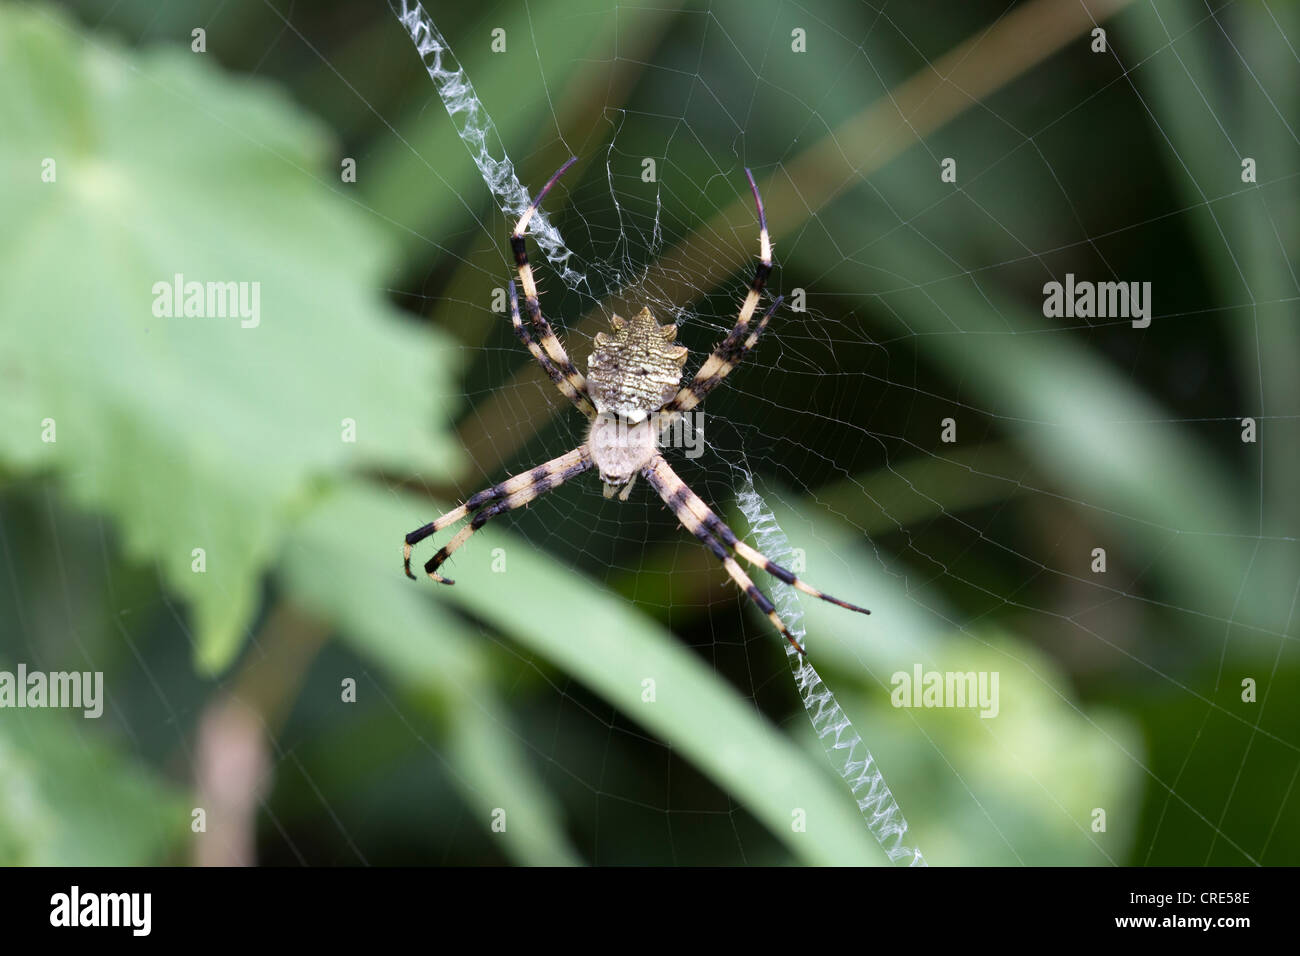 Araneidae Orb-weaver spider on web, Lake Mburo, National Park, Uganda - Stock Image